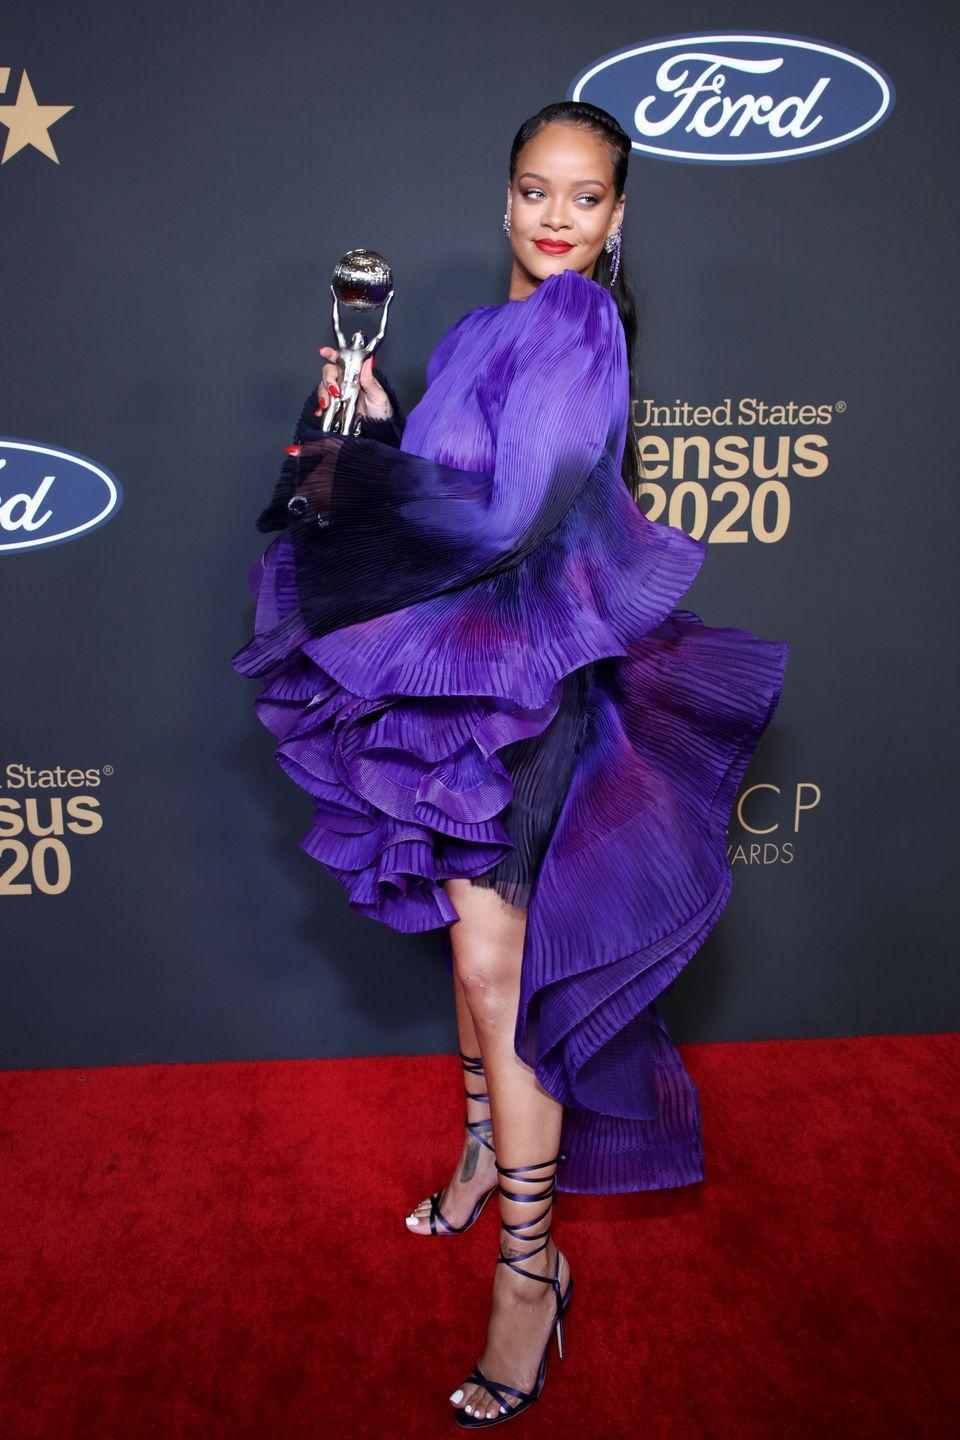 "<p>In a purple ruffled Givenchy dress, strappy sandals, and a 38-carat amethyst diamond ring by <a href=""https://kallati.com/"" rel=""nofollow noopener"" target=""_blank"" data-ylk=""slk:Kallati"" class=""link rapid-noclick-resp"">Kallati</a>, while accepting the <a href=""https://www.harpersbazaar.com/celebrity/latest/a30764700/rihanna-naacp-presidents-award/"" rel=""nofollow noopener"" target=""_blank"" data-ylk=""slk:NAACP President's Award"" class=""link rapid-noclick-resp"">NAACP President's Award</a> at the 51st NAACP Image Awards in Pasadena, California.</p>"